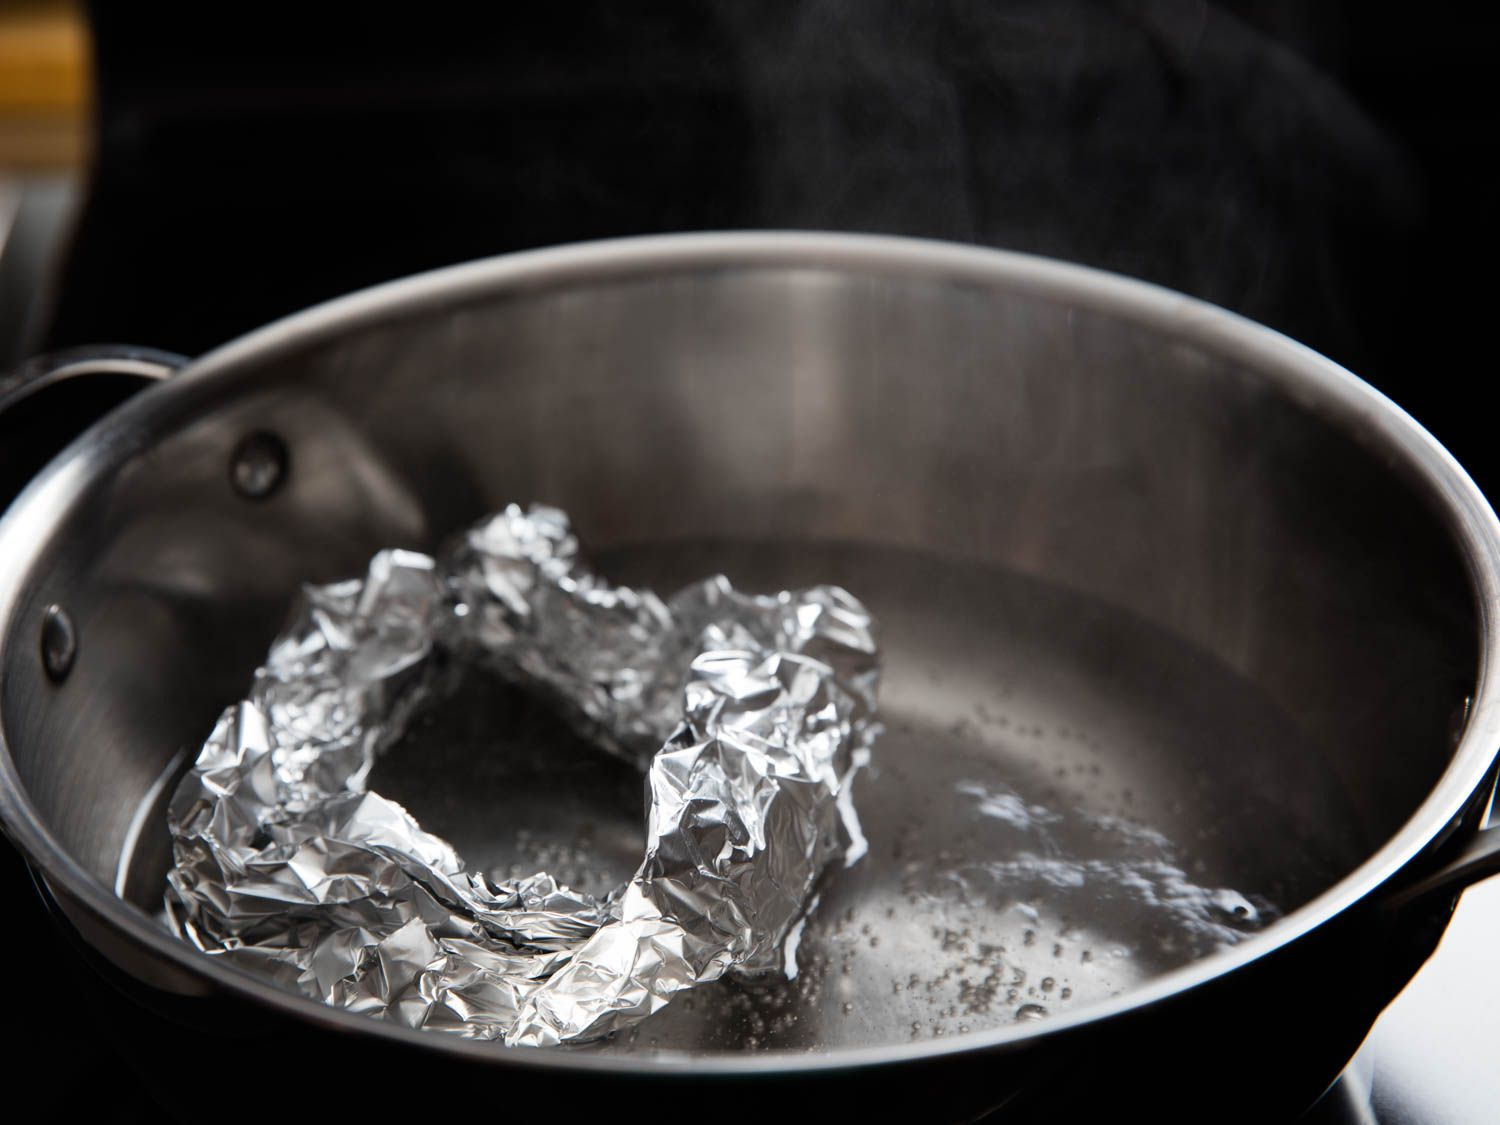 A thick ring of crumpled tin foil on the bottom of simmering pot of water